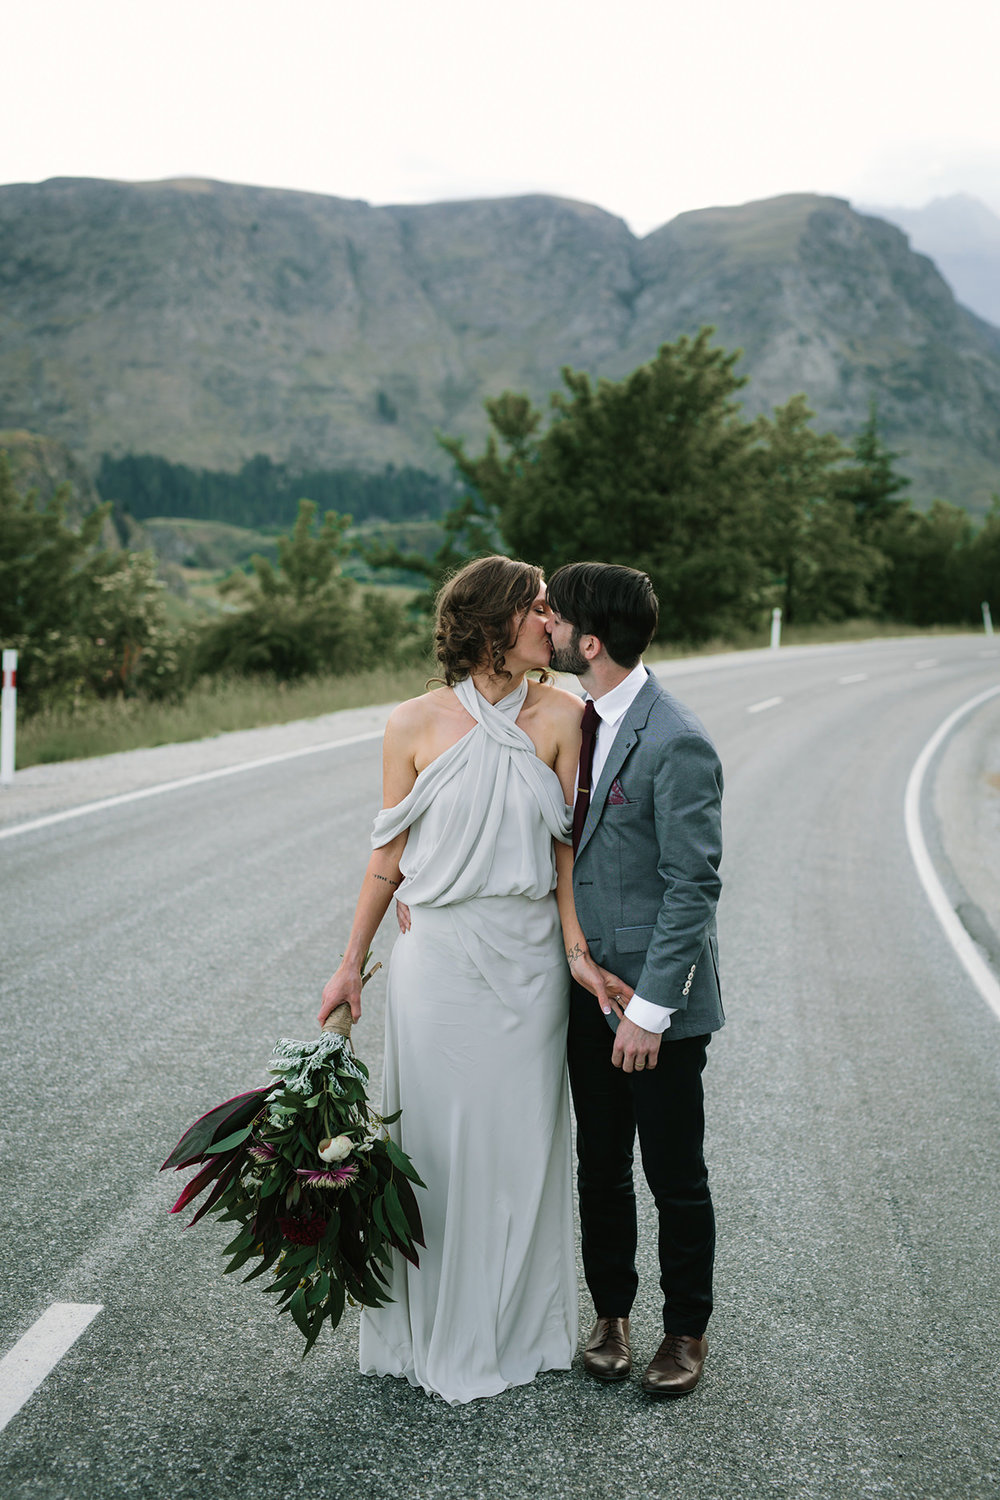 I-Got-You-Babe-Weddings-Cara-Joel-Elopement-New-Zealand0118.JPG